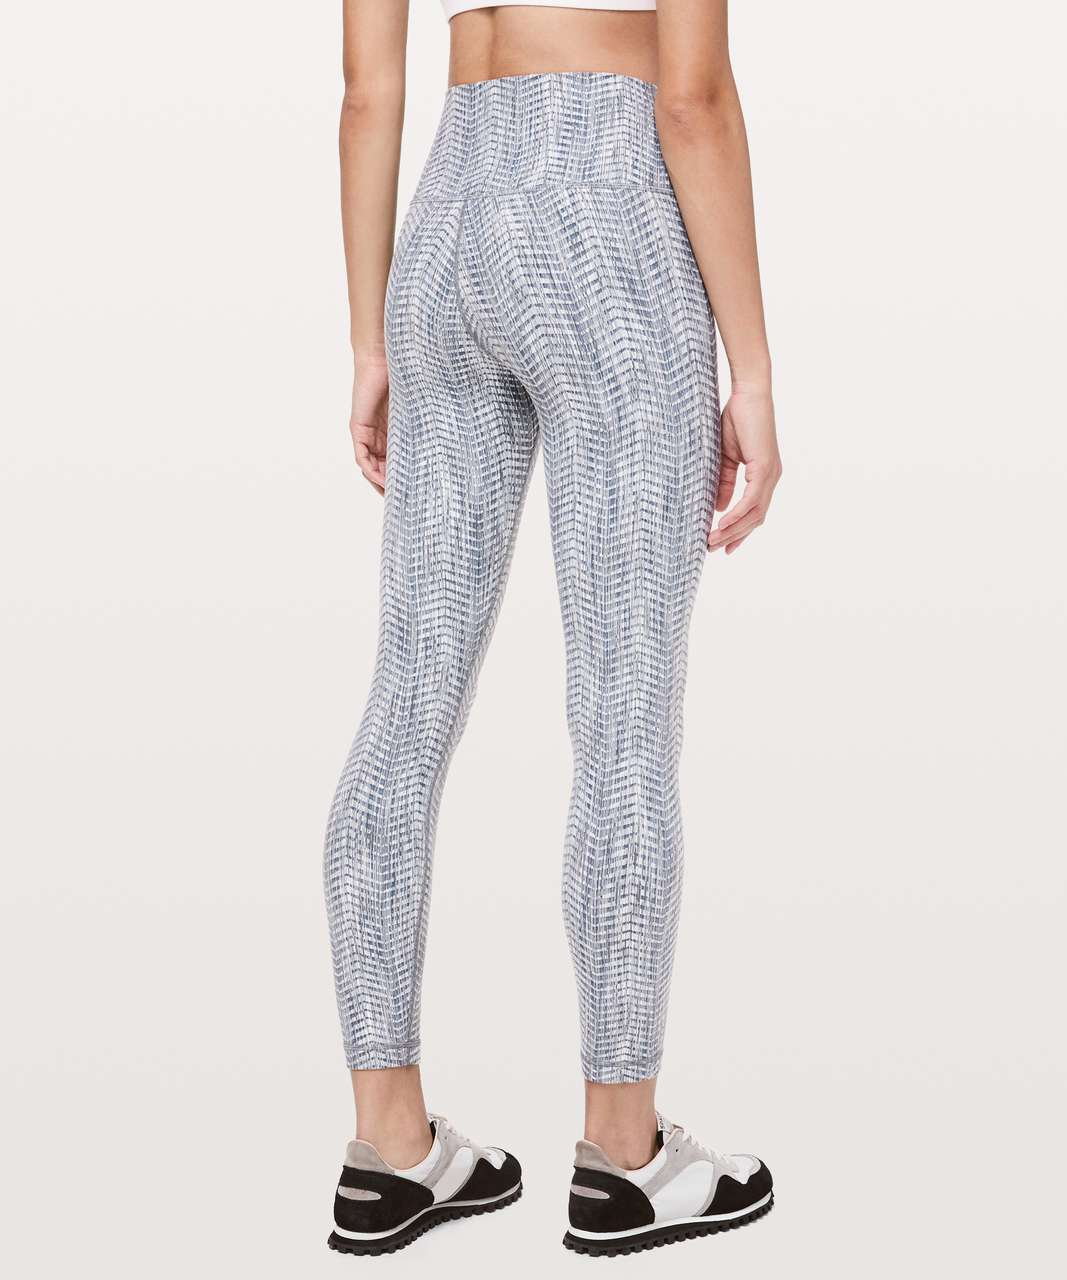 "Lululemon Wunder Under High-Rise 7/8 Tight *Full-On Luon 25"" - Luon Arrow Jacquard Battleship Silver Spoon"